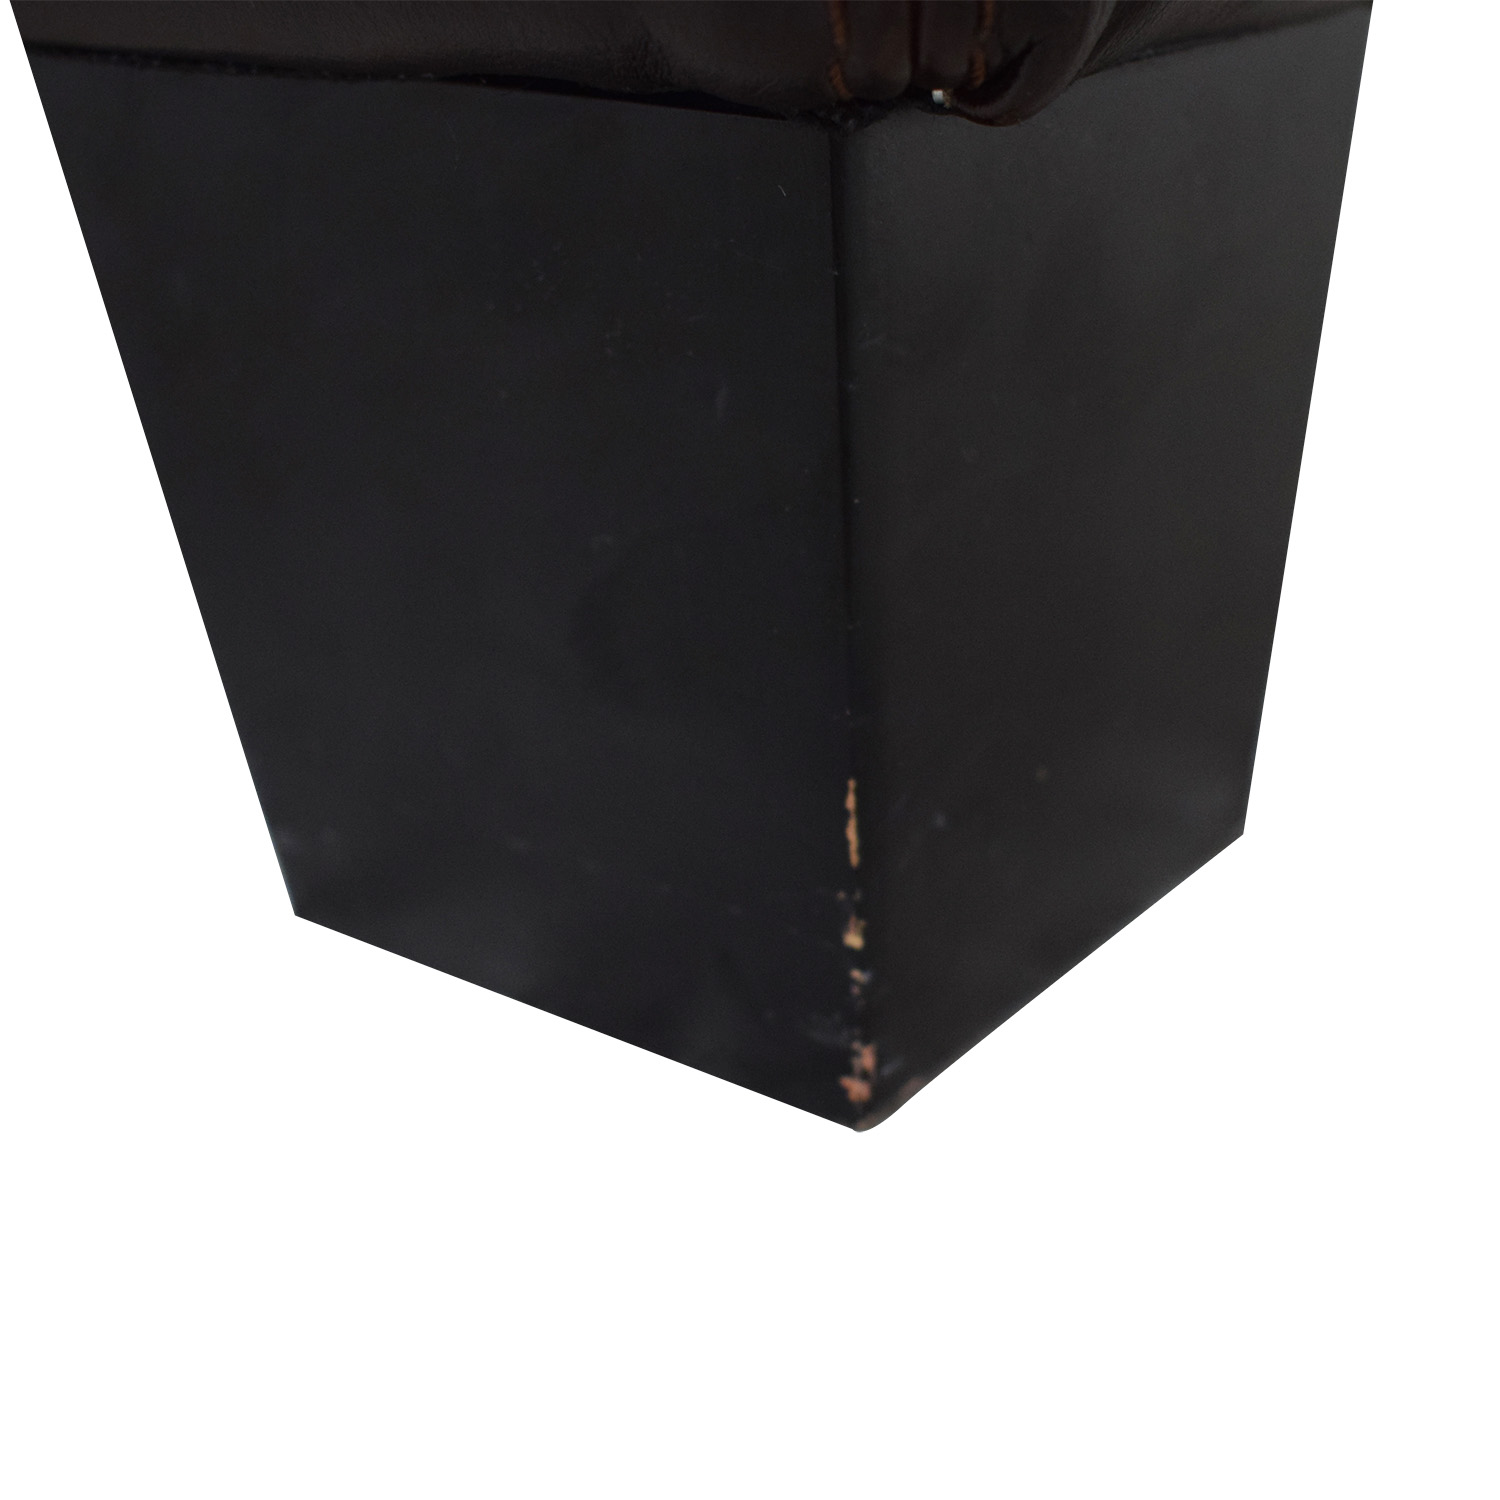 Chateau D'Ax Chateau D'Ax Brown Leather Cocktail Ottoman used